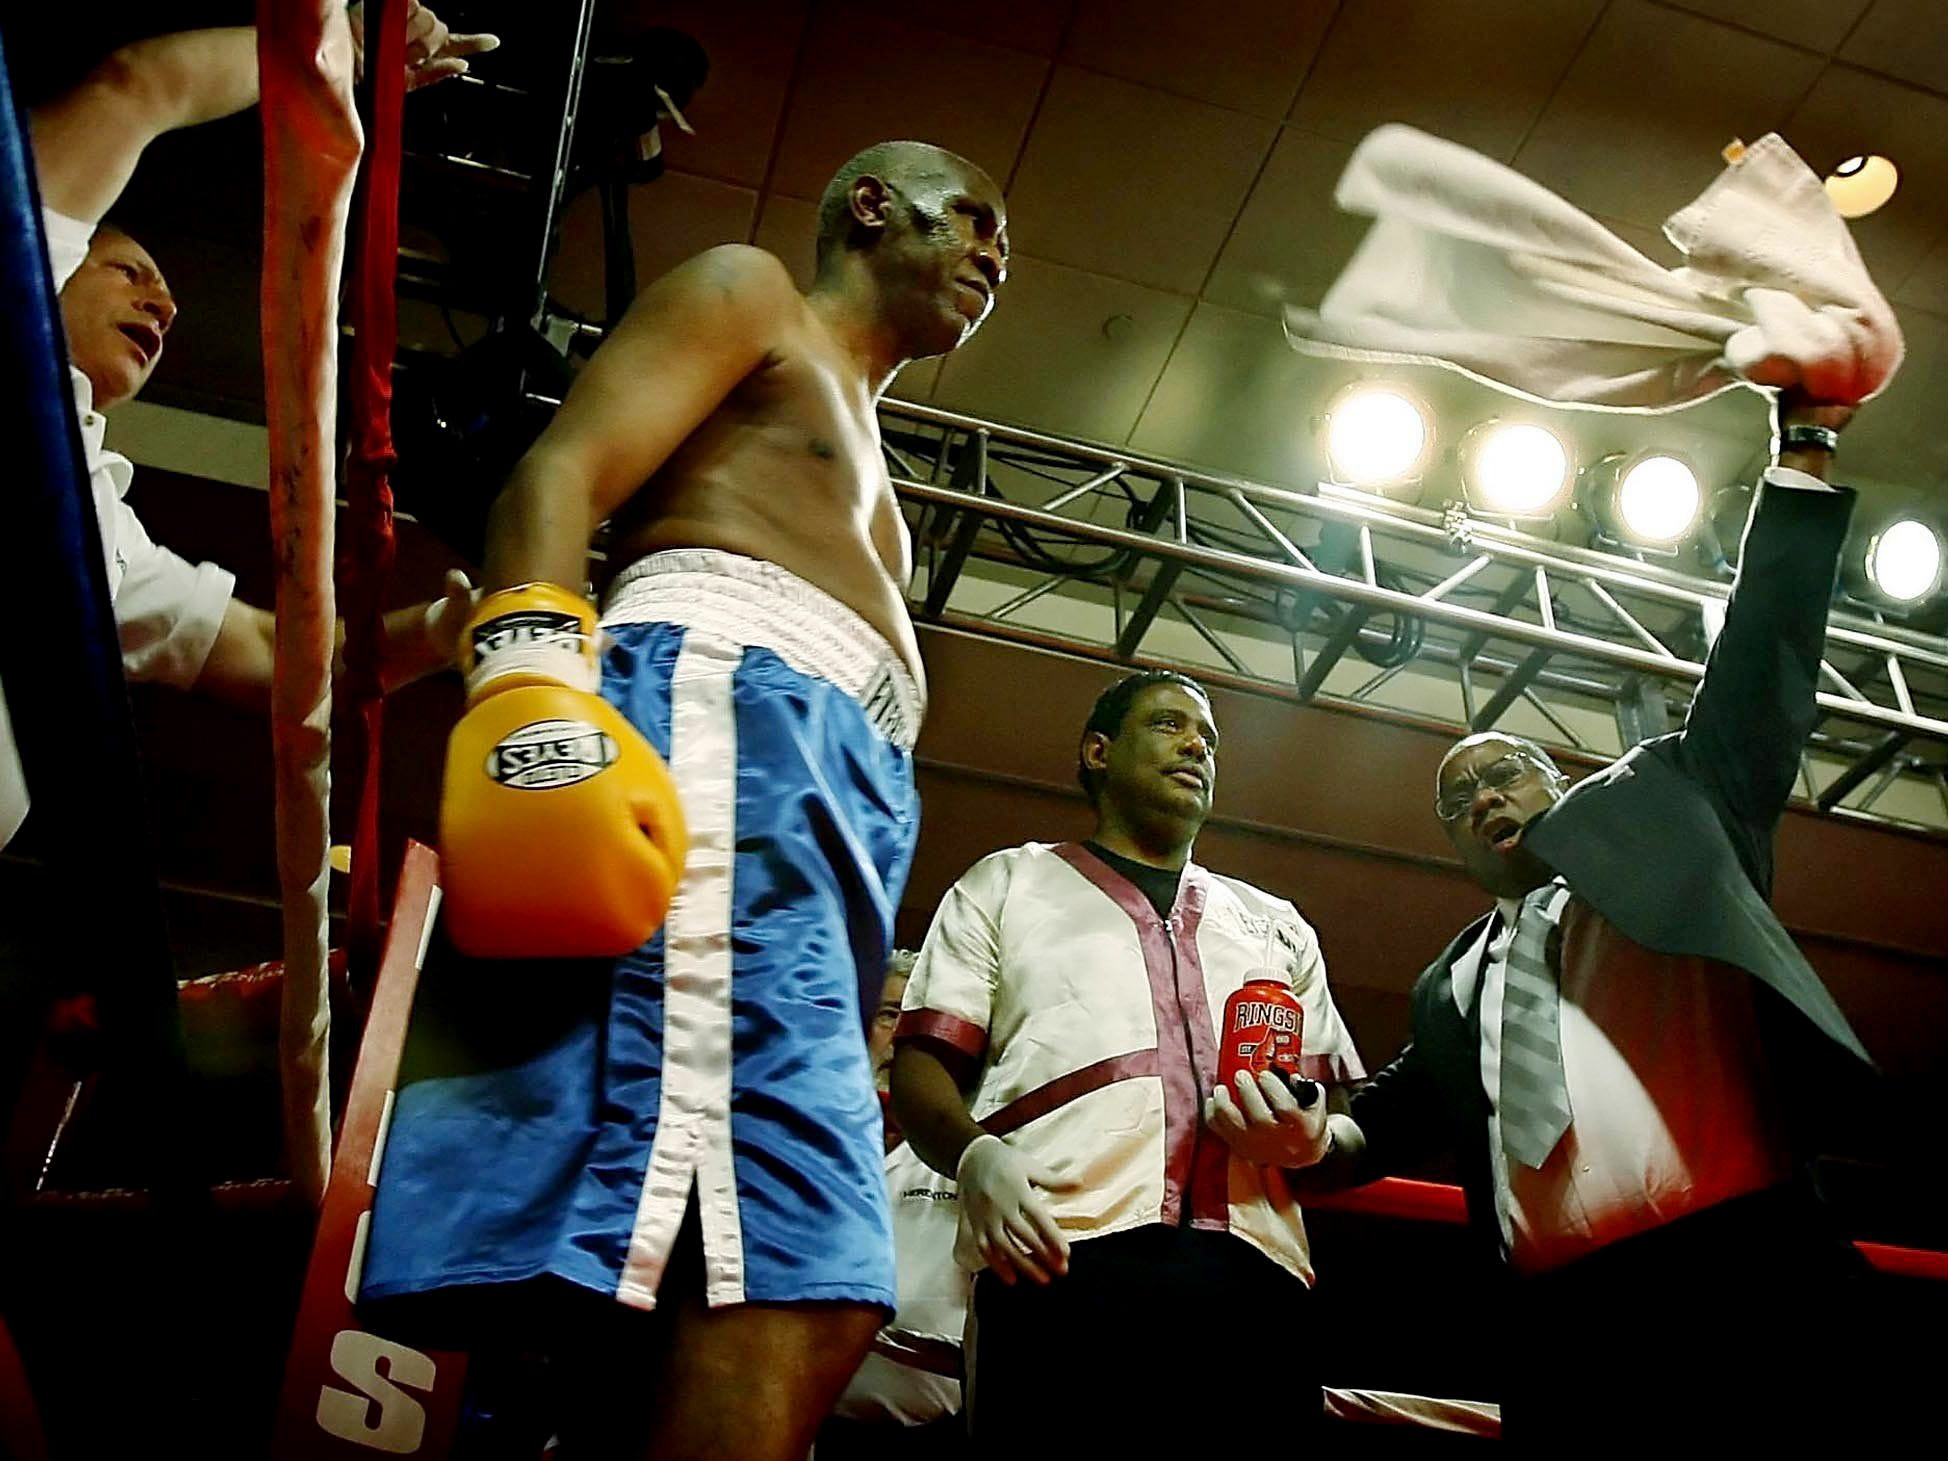 Memphis Mayor Willie Herenton, 66, middle, and his corner get pumped up before his benefit boxing match against Joe Frazier at the Peabody Hotel in Nov. 30, 2006.